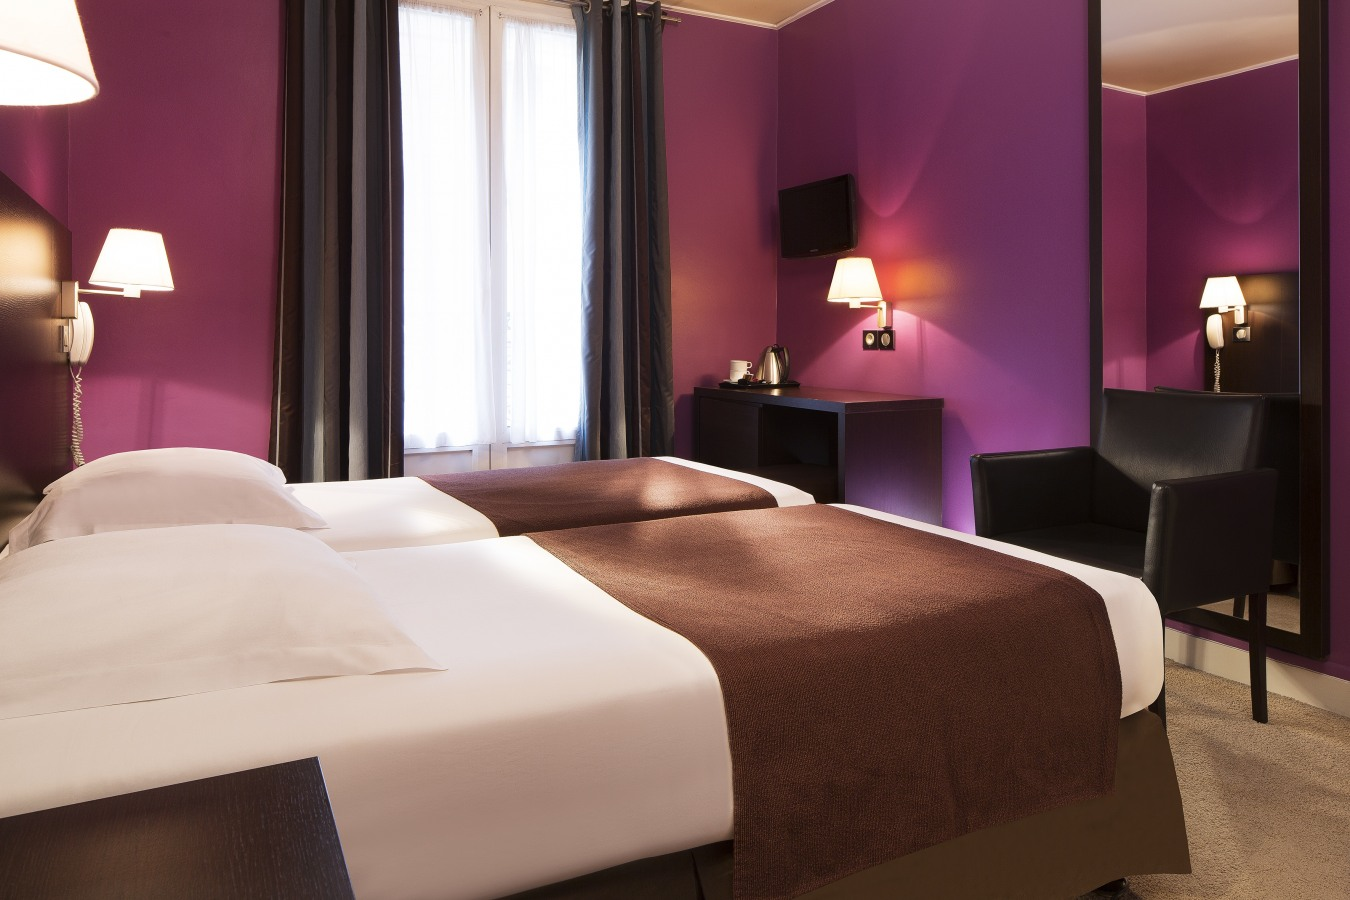 Hotel Sophie Germain - Ofertas exclusivas